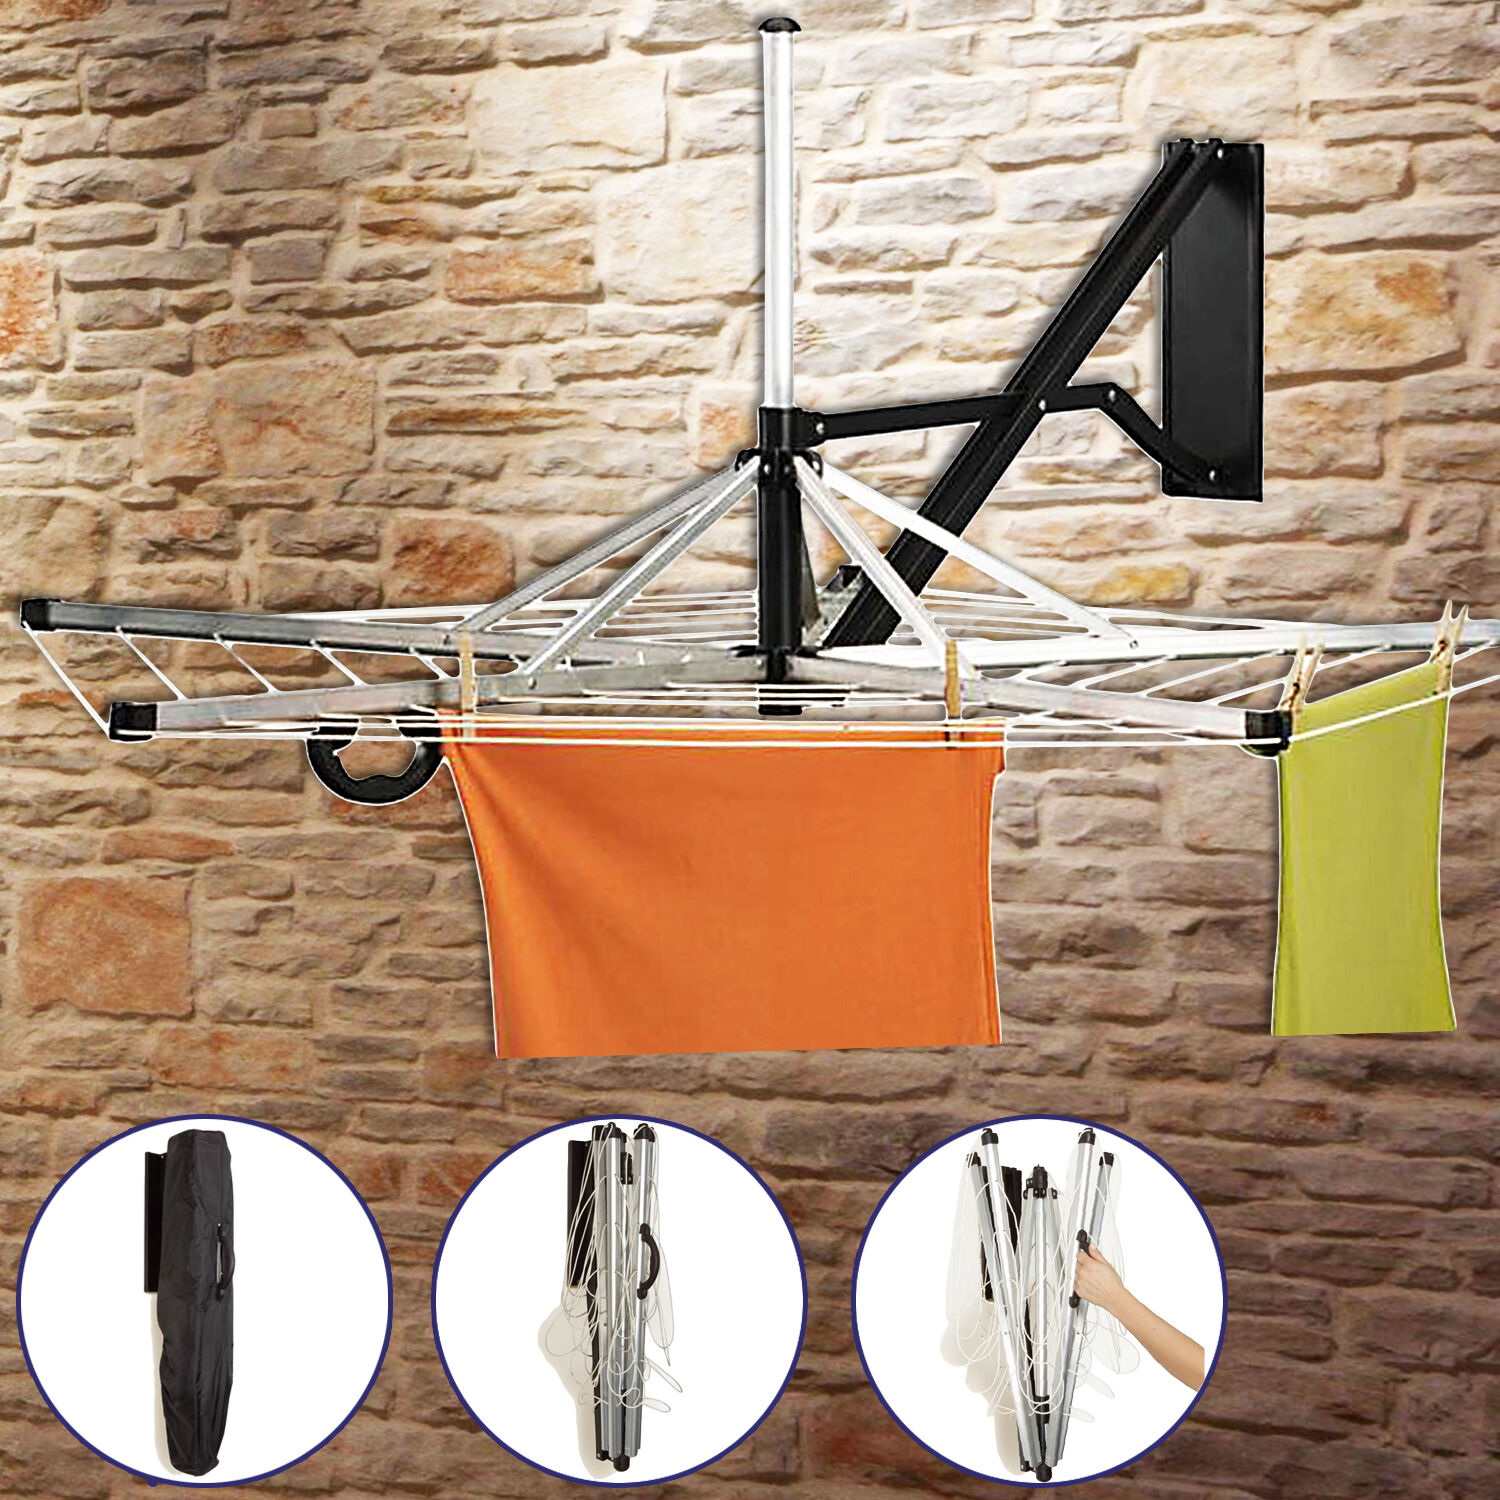 Wall Fix 5 Arm Wall Mounted Rotary Dryer 26m Clothes